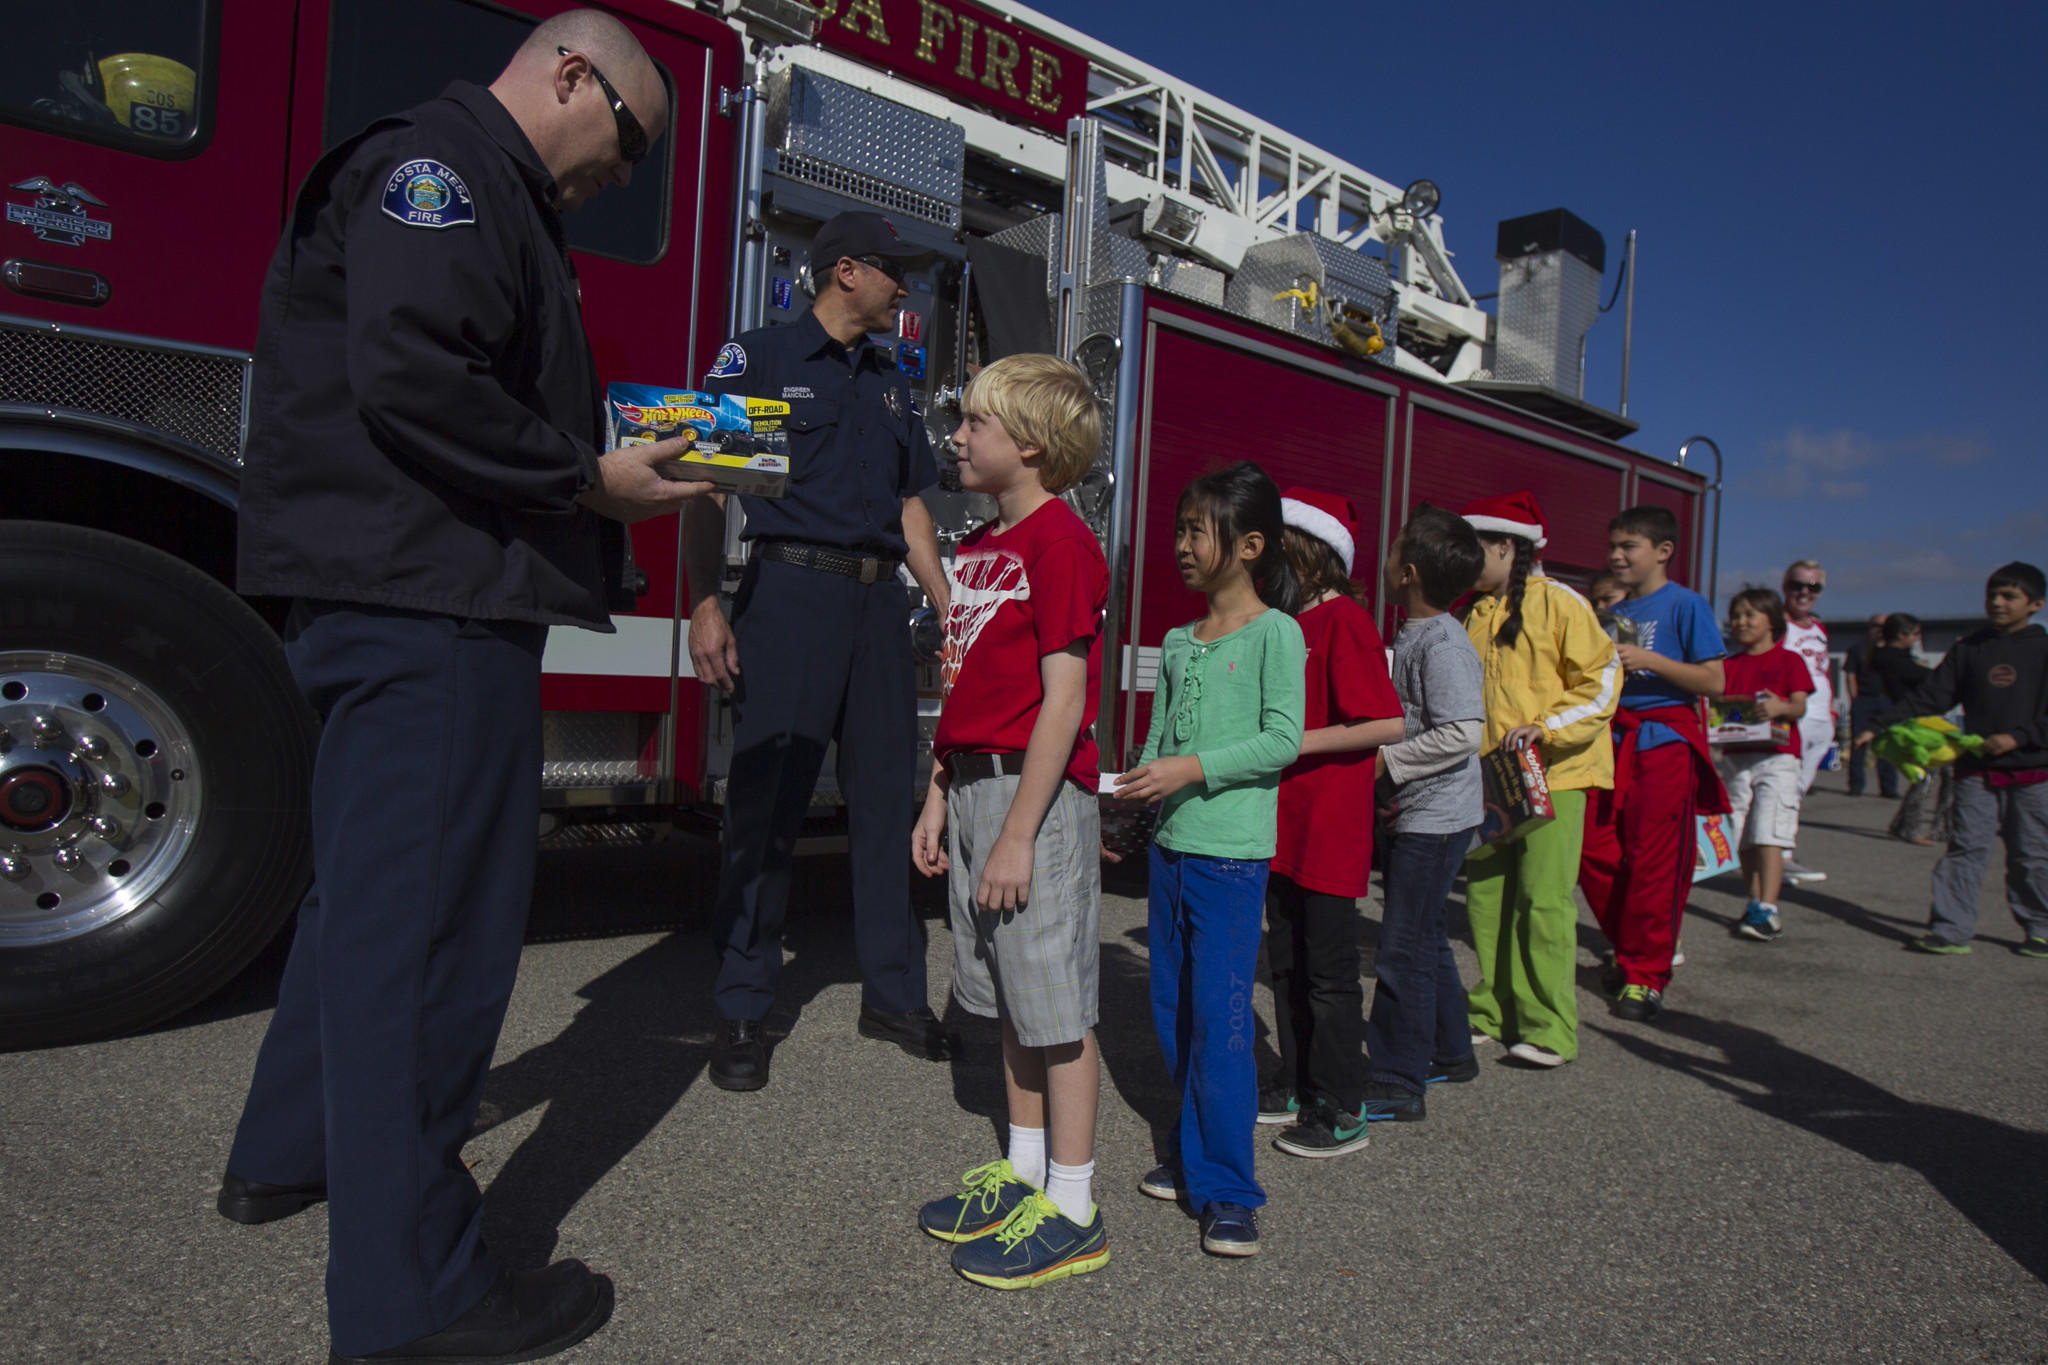 Costa Mesa Firefighter Ken McCart left, and Engineer Anthony Mancillas take a gift from Kaiser Elementary School student Breden Hayward, 8, for the Costa Mesa Fire Department's charity Spark of Love on Friday, December 20. (Scott Smeltzer, Daily Pilot)